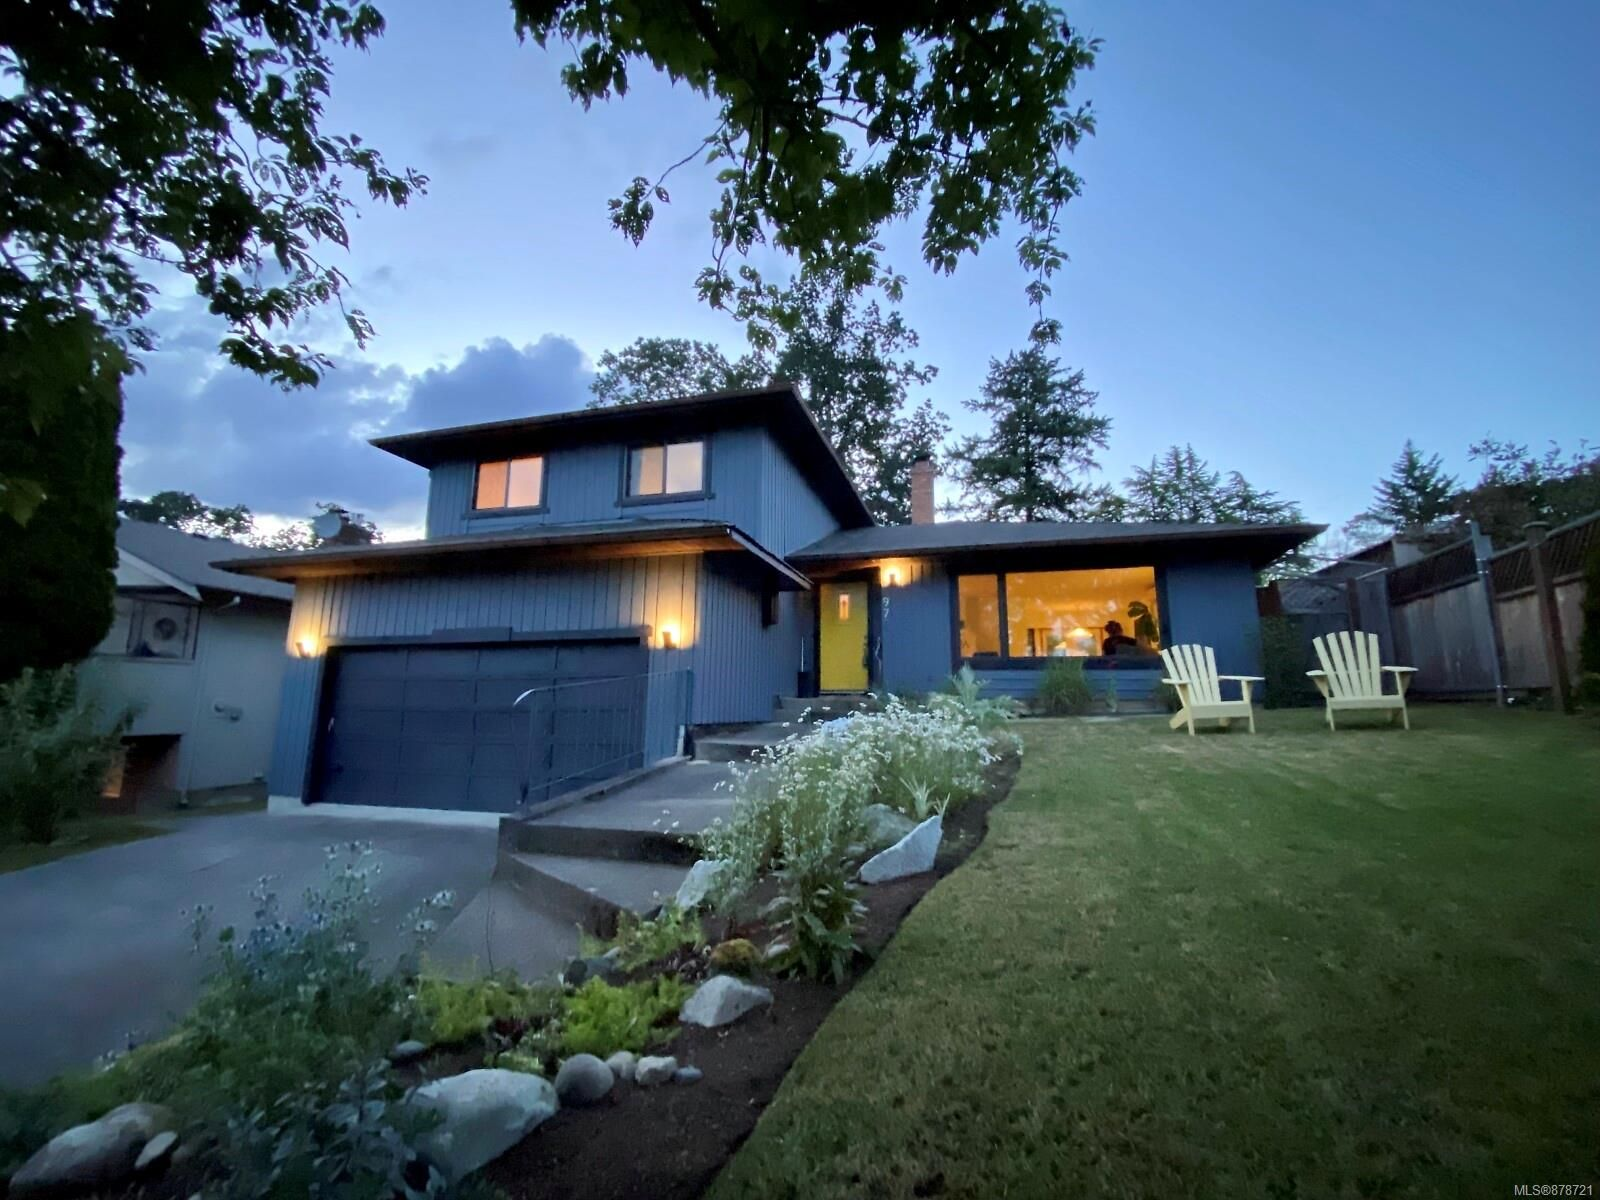 Main Photo: 972 Damelart Way in : CS Brentwood Bay House for sale (Central Saanich)  : MLS®# 878721